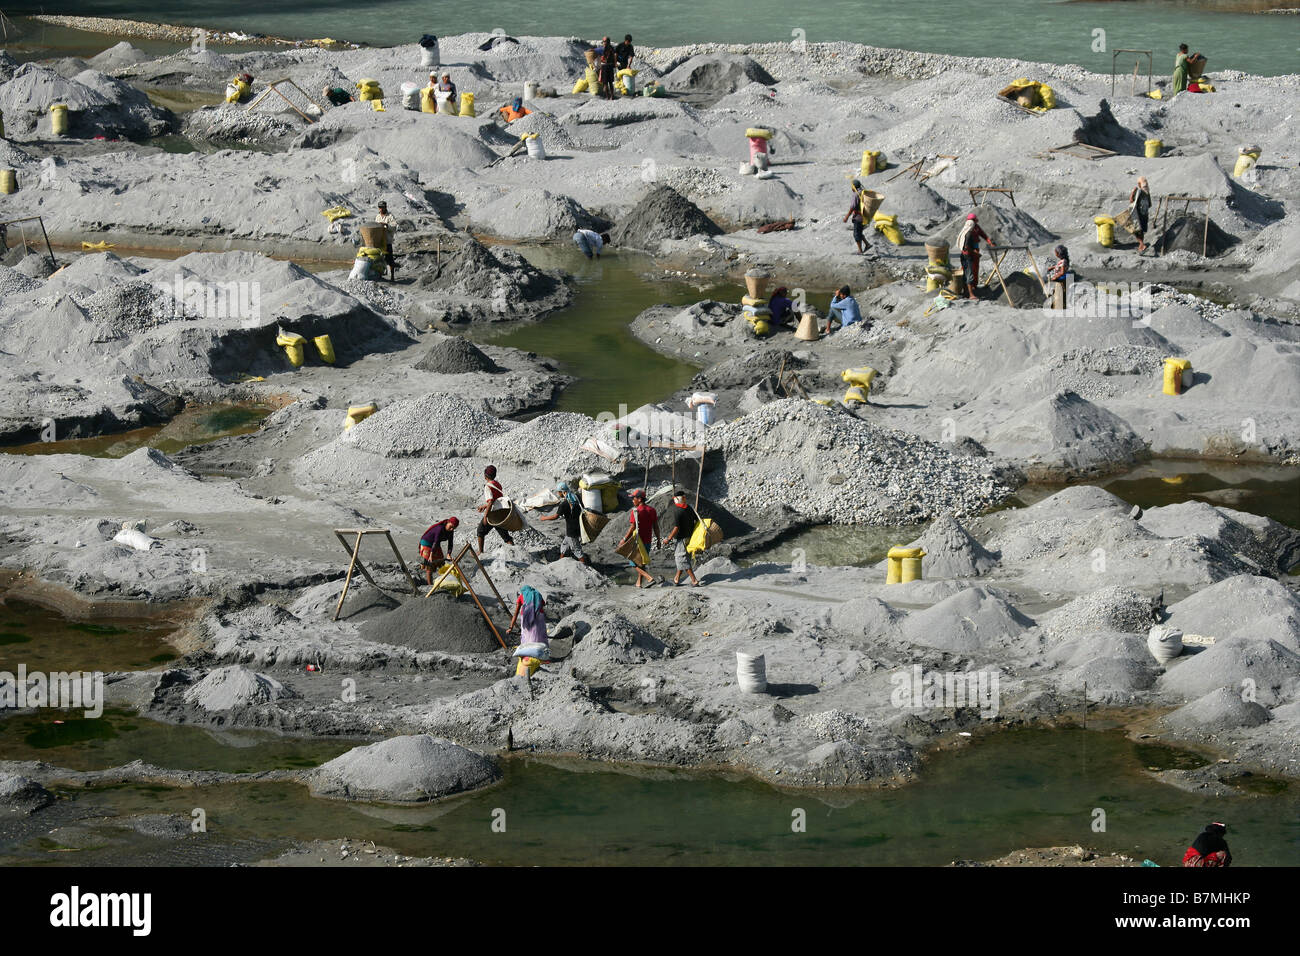 Sand and stone quarry River Seti Pokhara Nepal - Stock Image